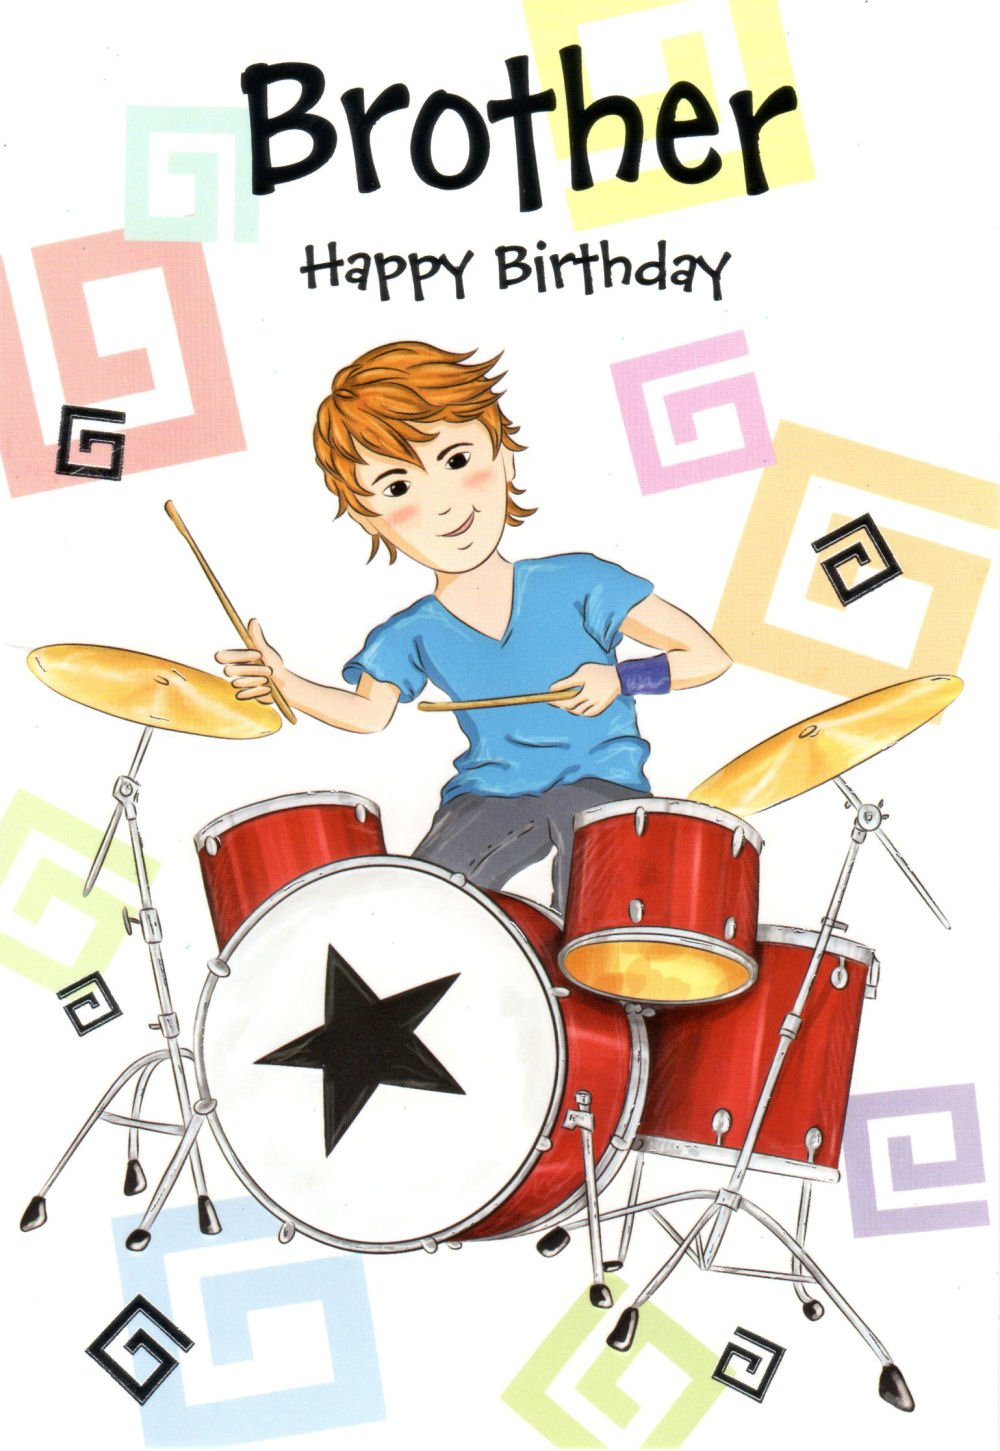 Brother Drums Happy Birthday Greeting Card Drumkit Sticks Amazoncouk Office Products